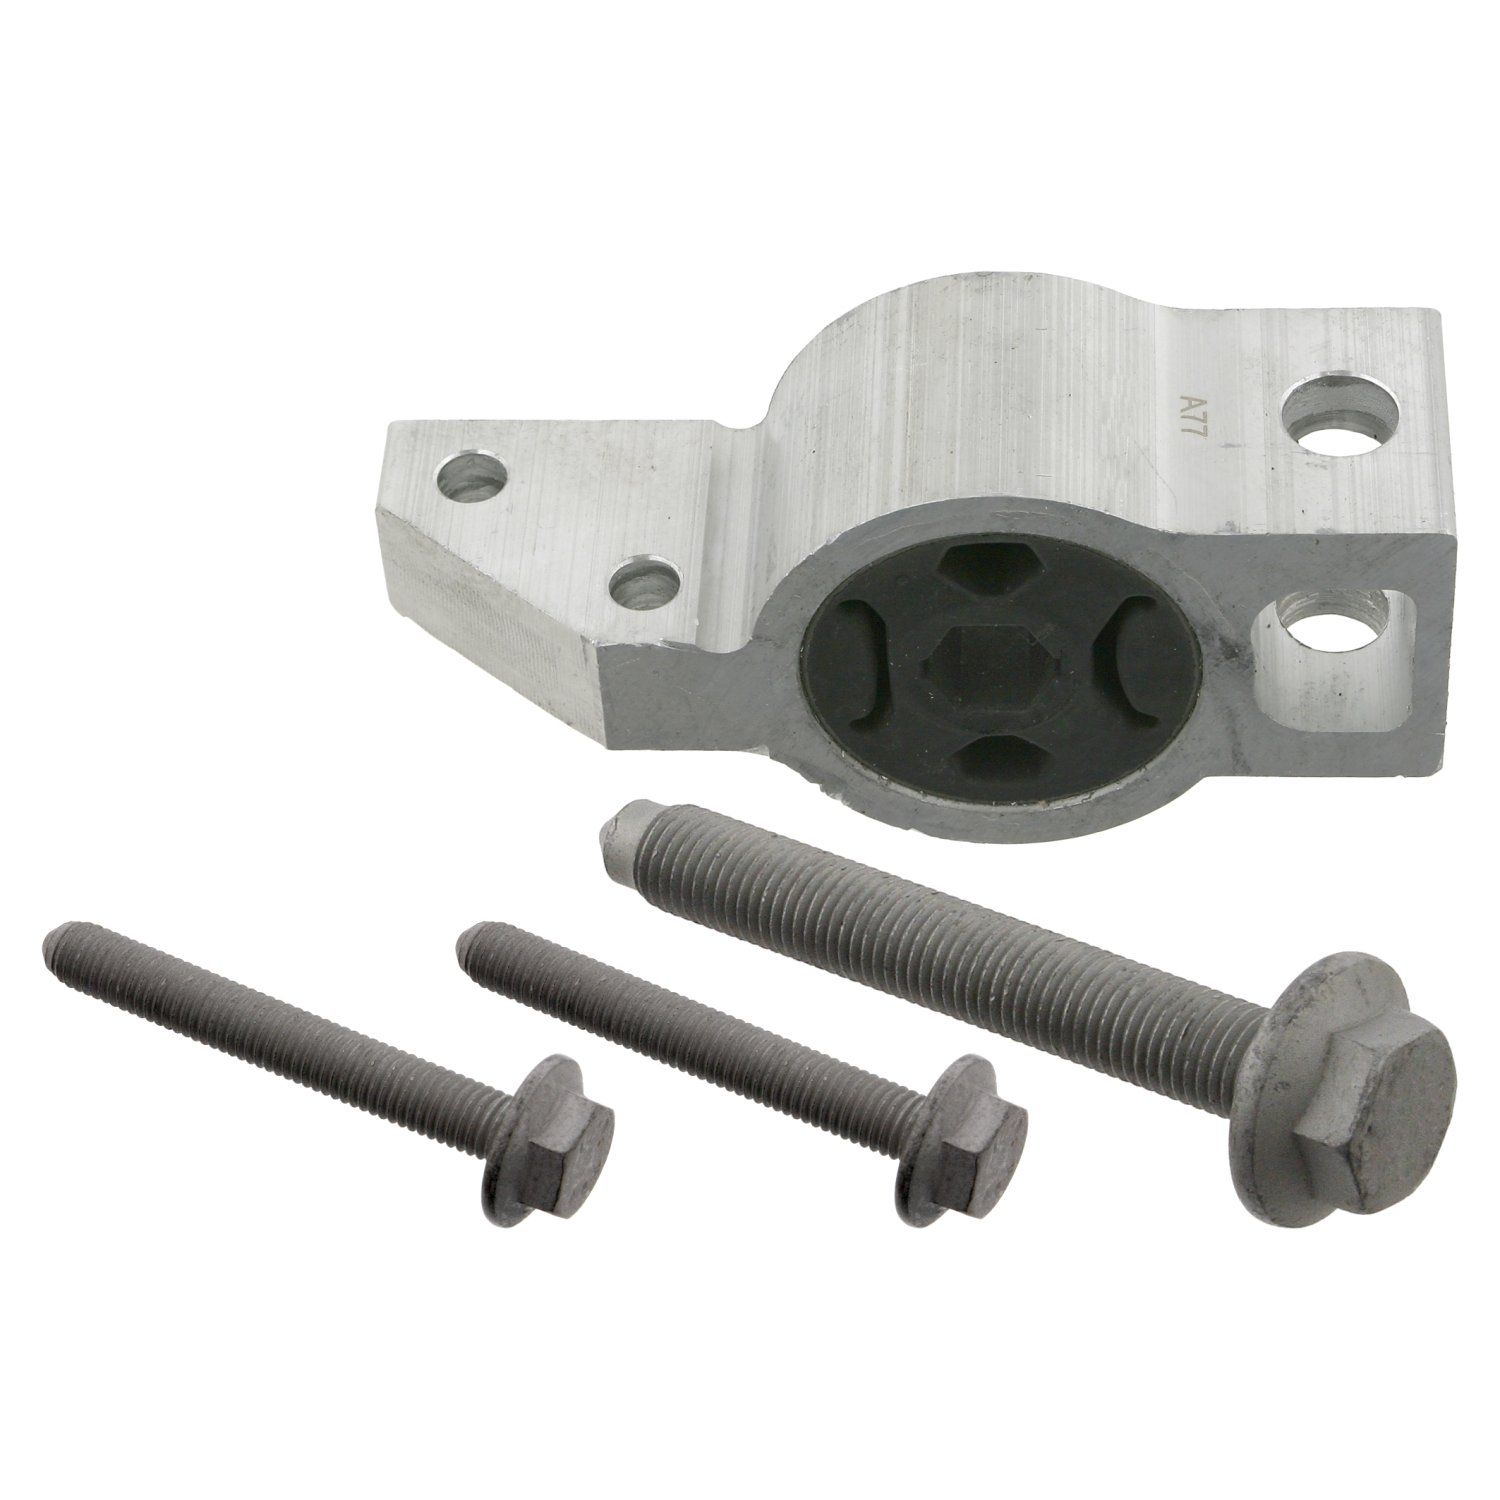 febi bilstein 32541 control arm bush with bracket and screws (front axle right, rear) - Pack of 1